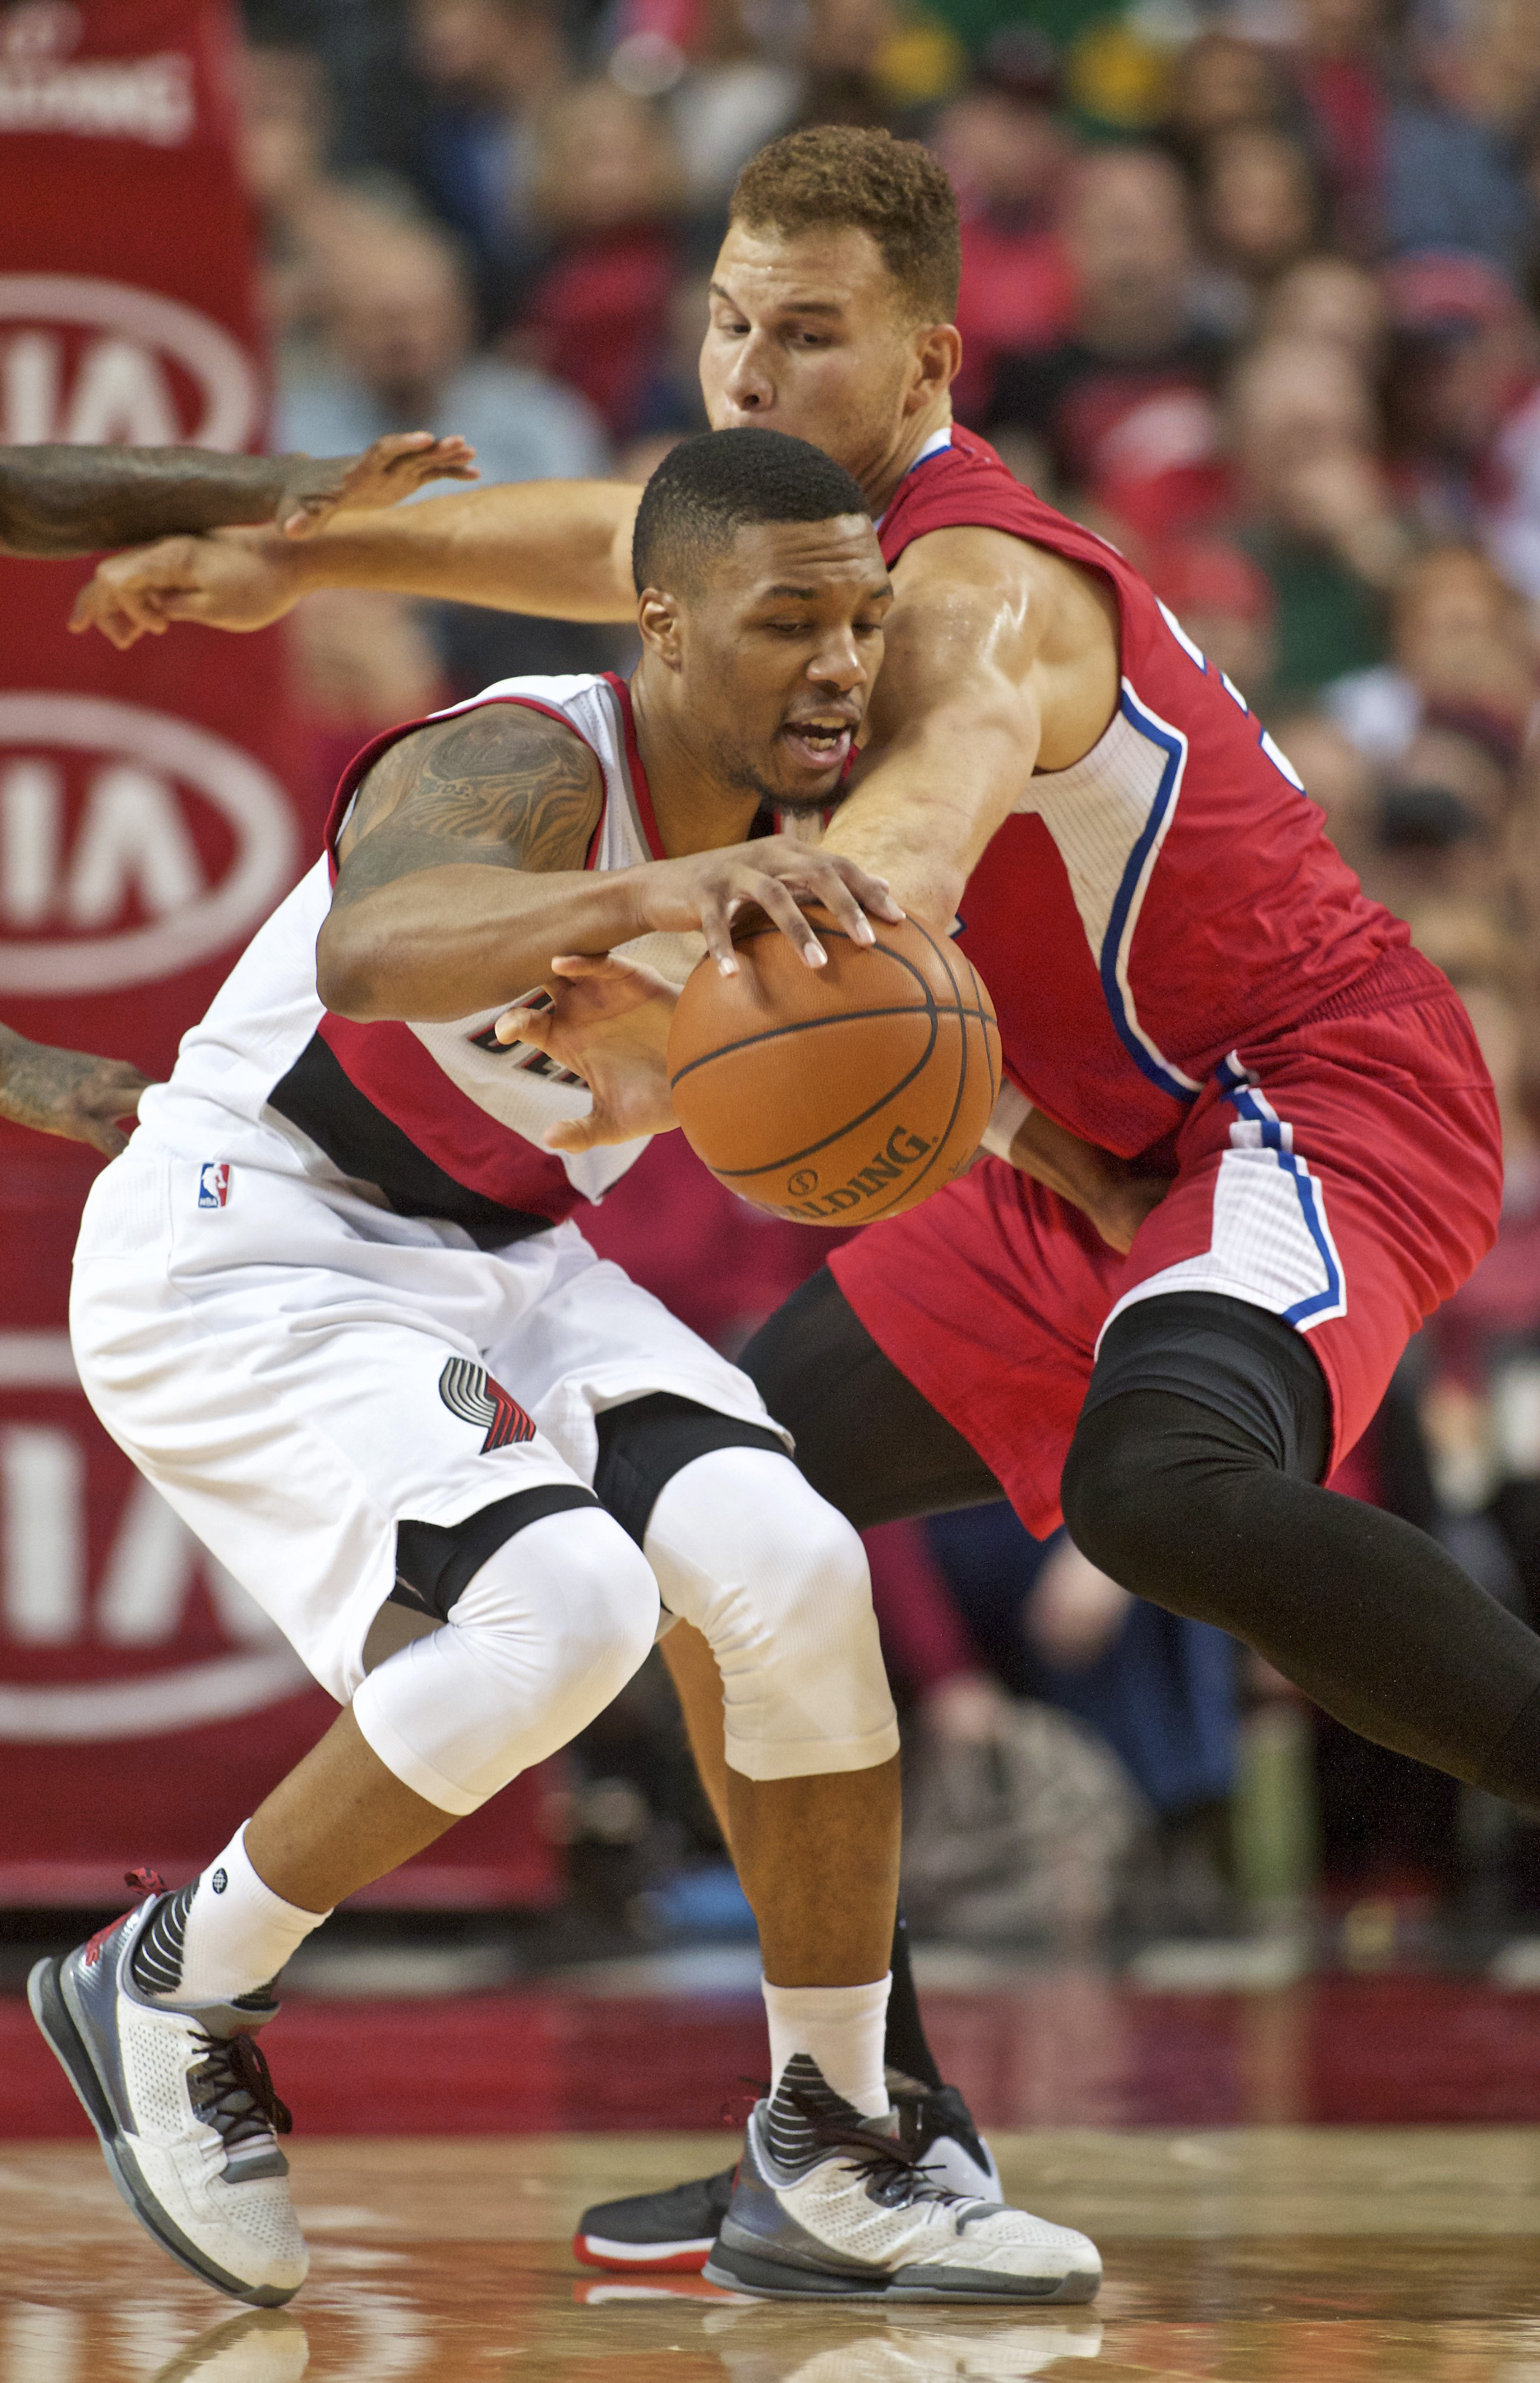 Portland Trail Blazers guard Damian Lillard, left, and Los Angeles Clippers forward Blake Griffin, right collide during the second half of an NBA basketball game in Portland, Ore., Friday, Nov. 20, 2015. Portland won 102-91. (AP Photo/Craig Mitchelldyer)